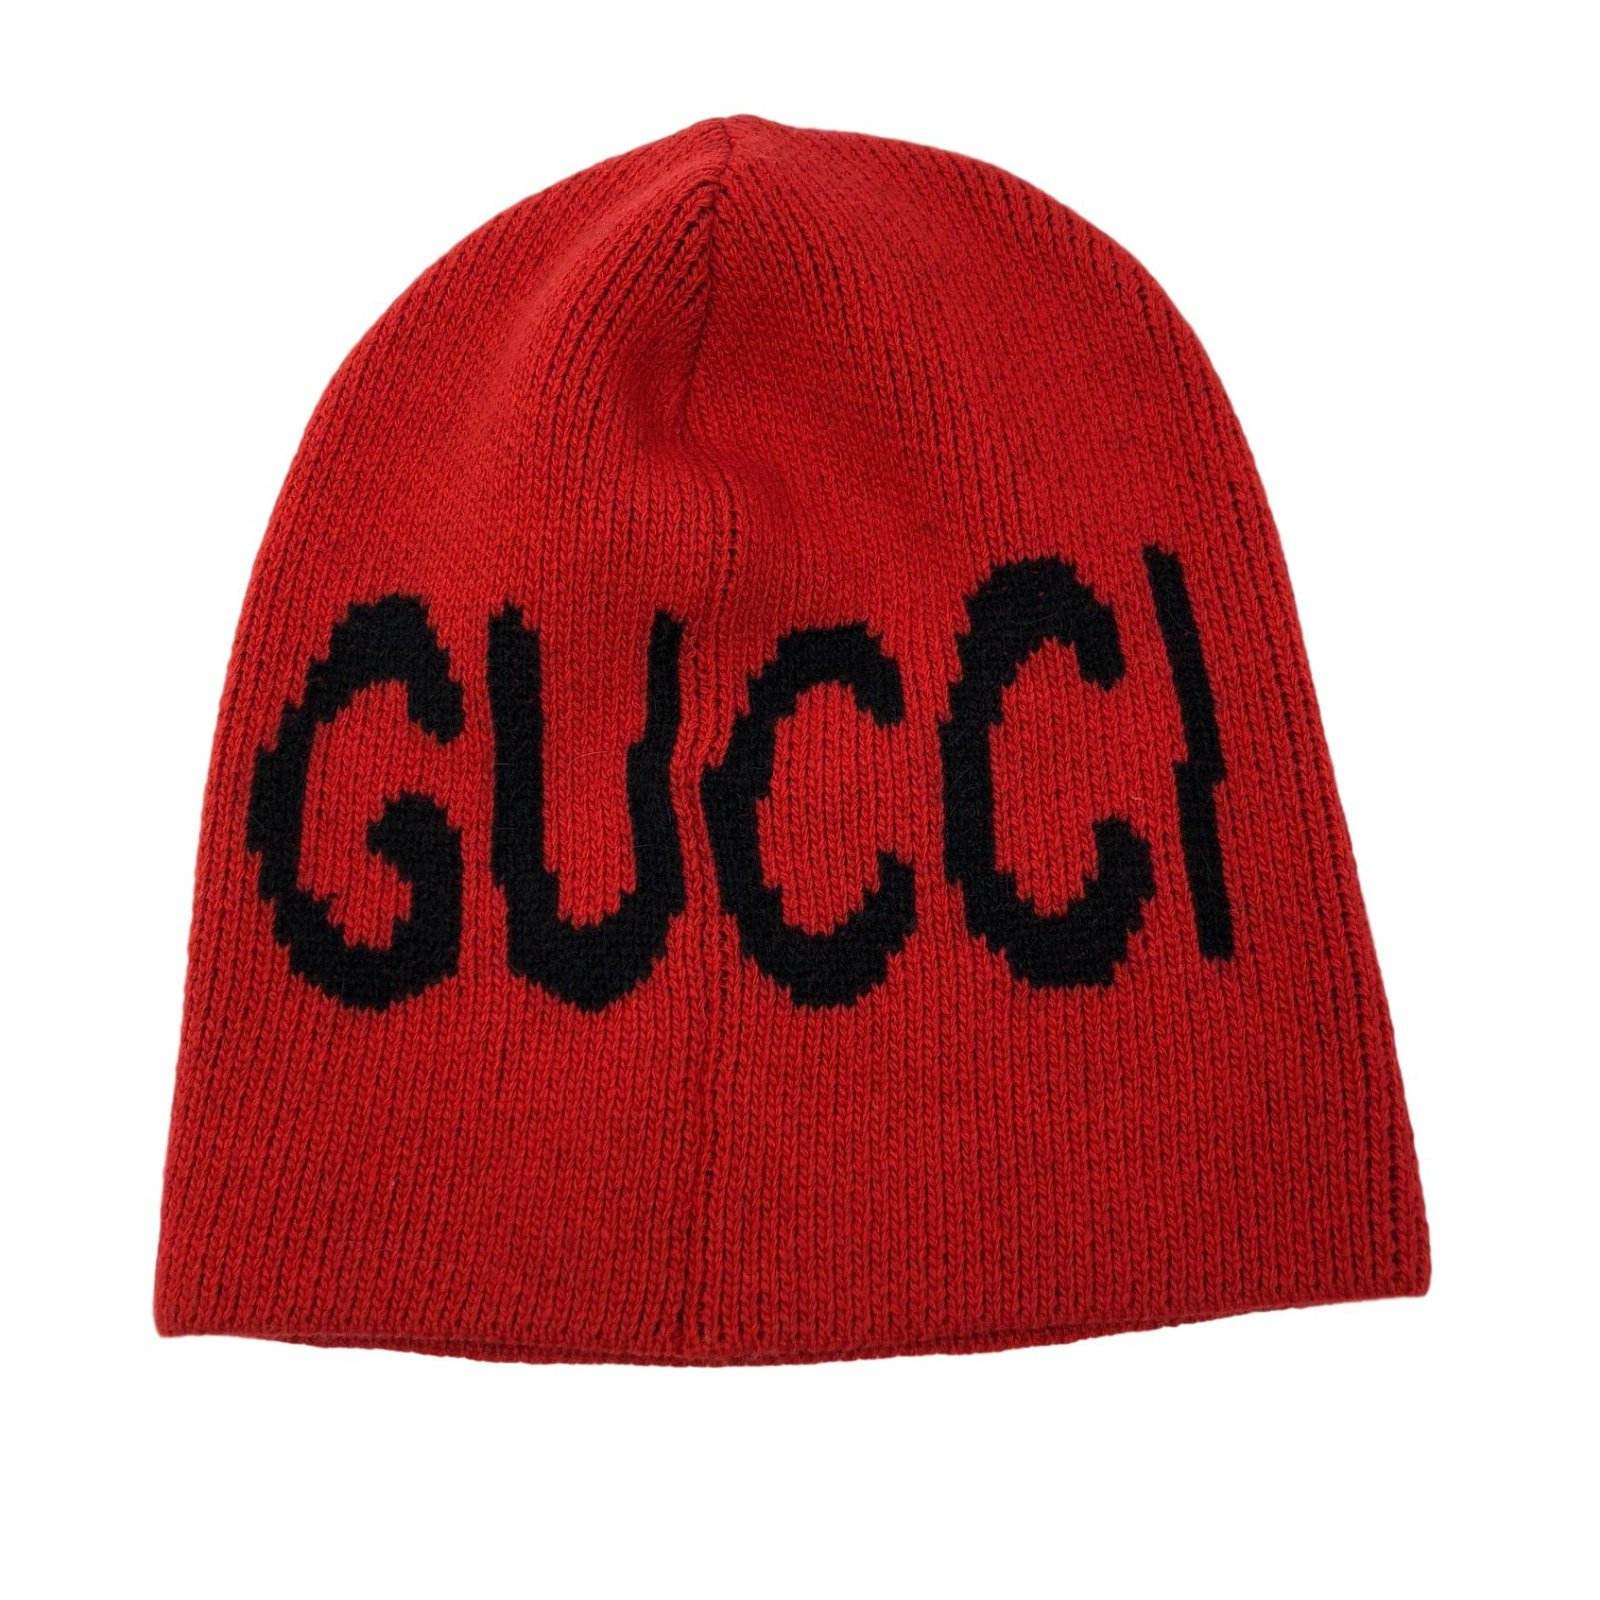 Gucci Beanie Hats Other cb5380a5ee0